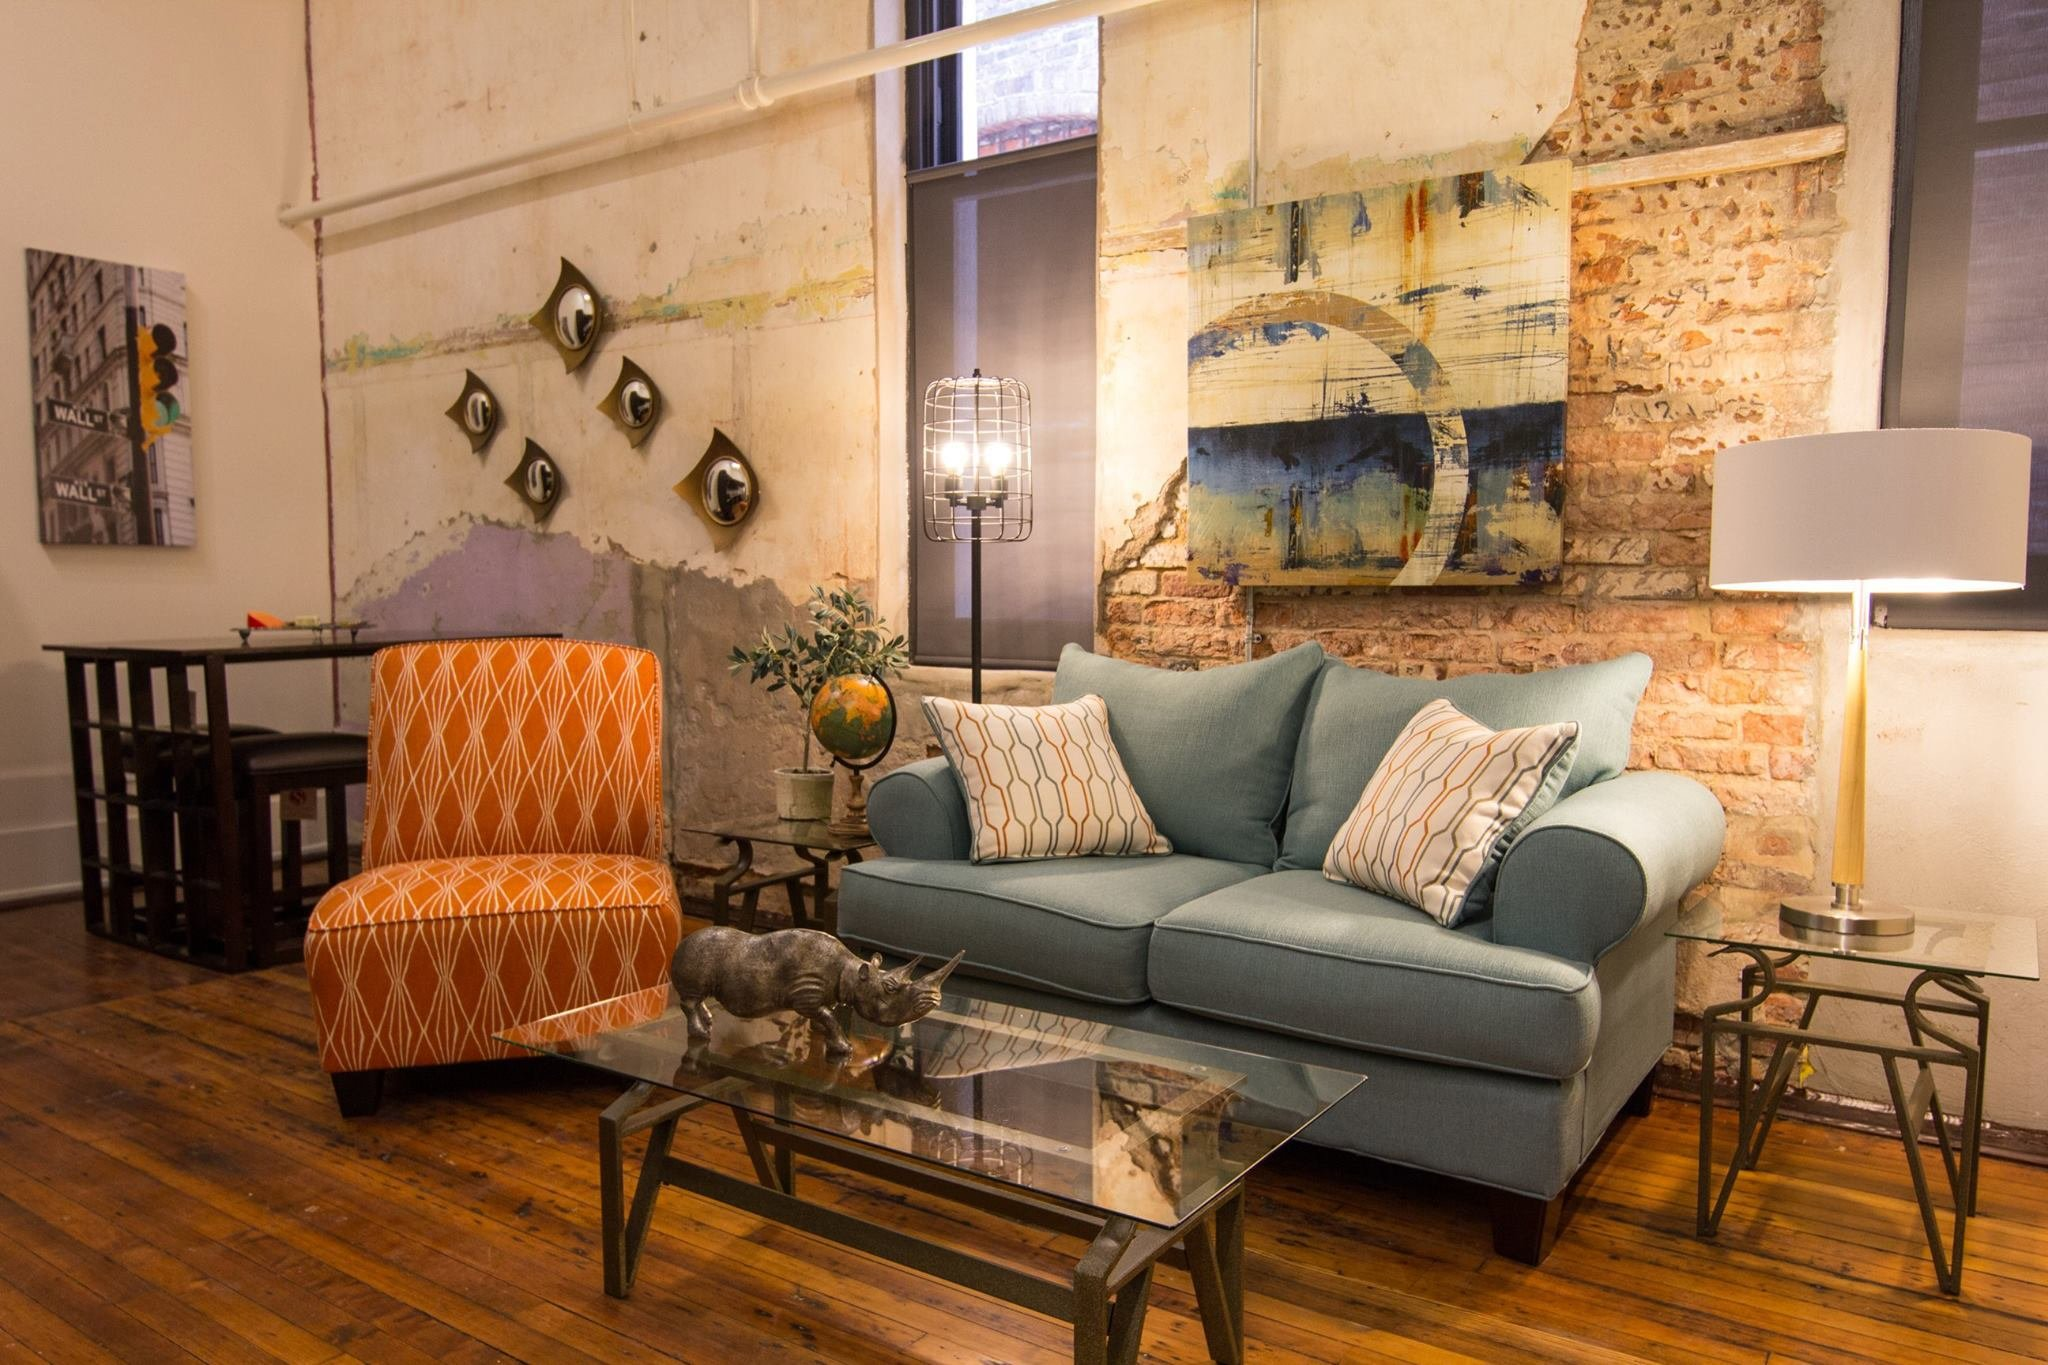 Best 1 Bedroom Apartment In Macon Ga ― The Lamar With Pictures